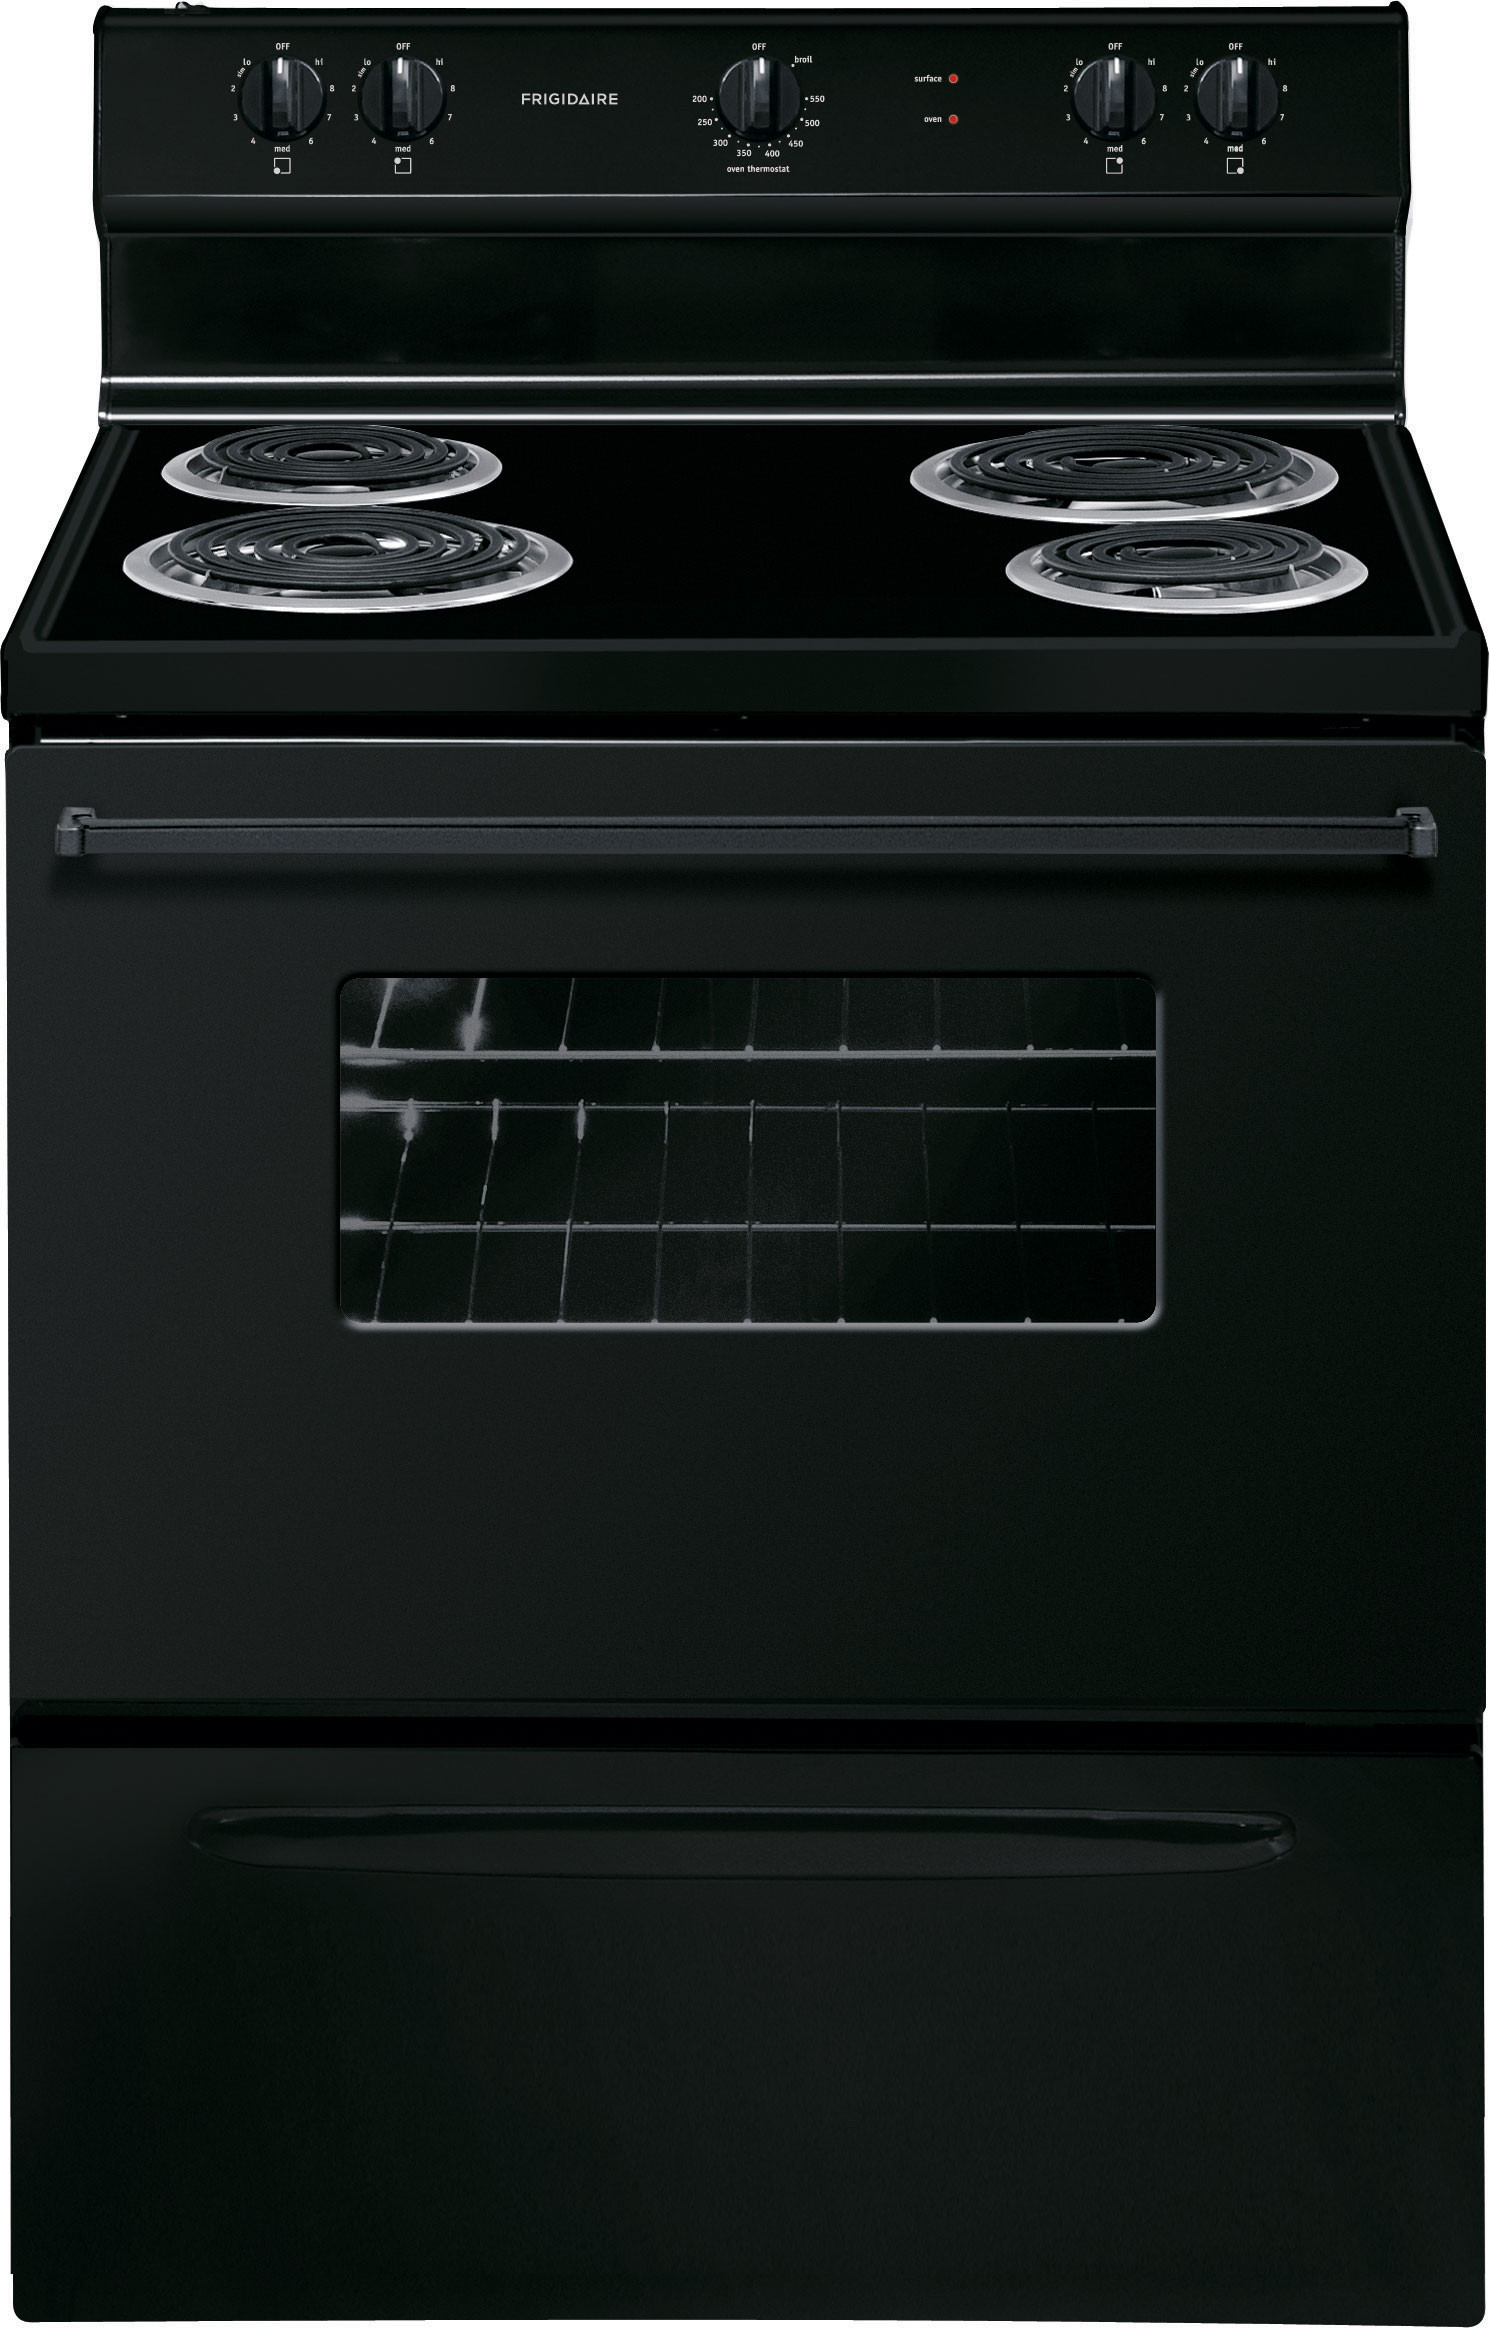 Frigidaire FFEF3005MB 30 Inch Freestanding Electric Range with Chrome Drip  Bowls, Interior Lighting, Storage Drawer, 4 Coil Elements and 4.2 cu. ft.